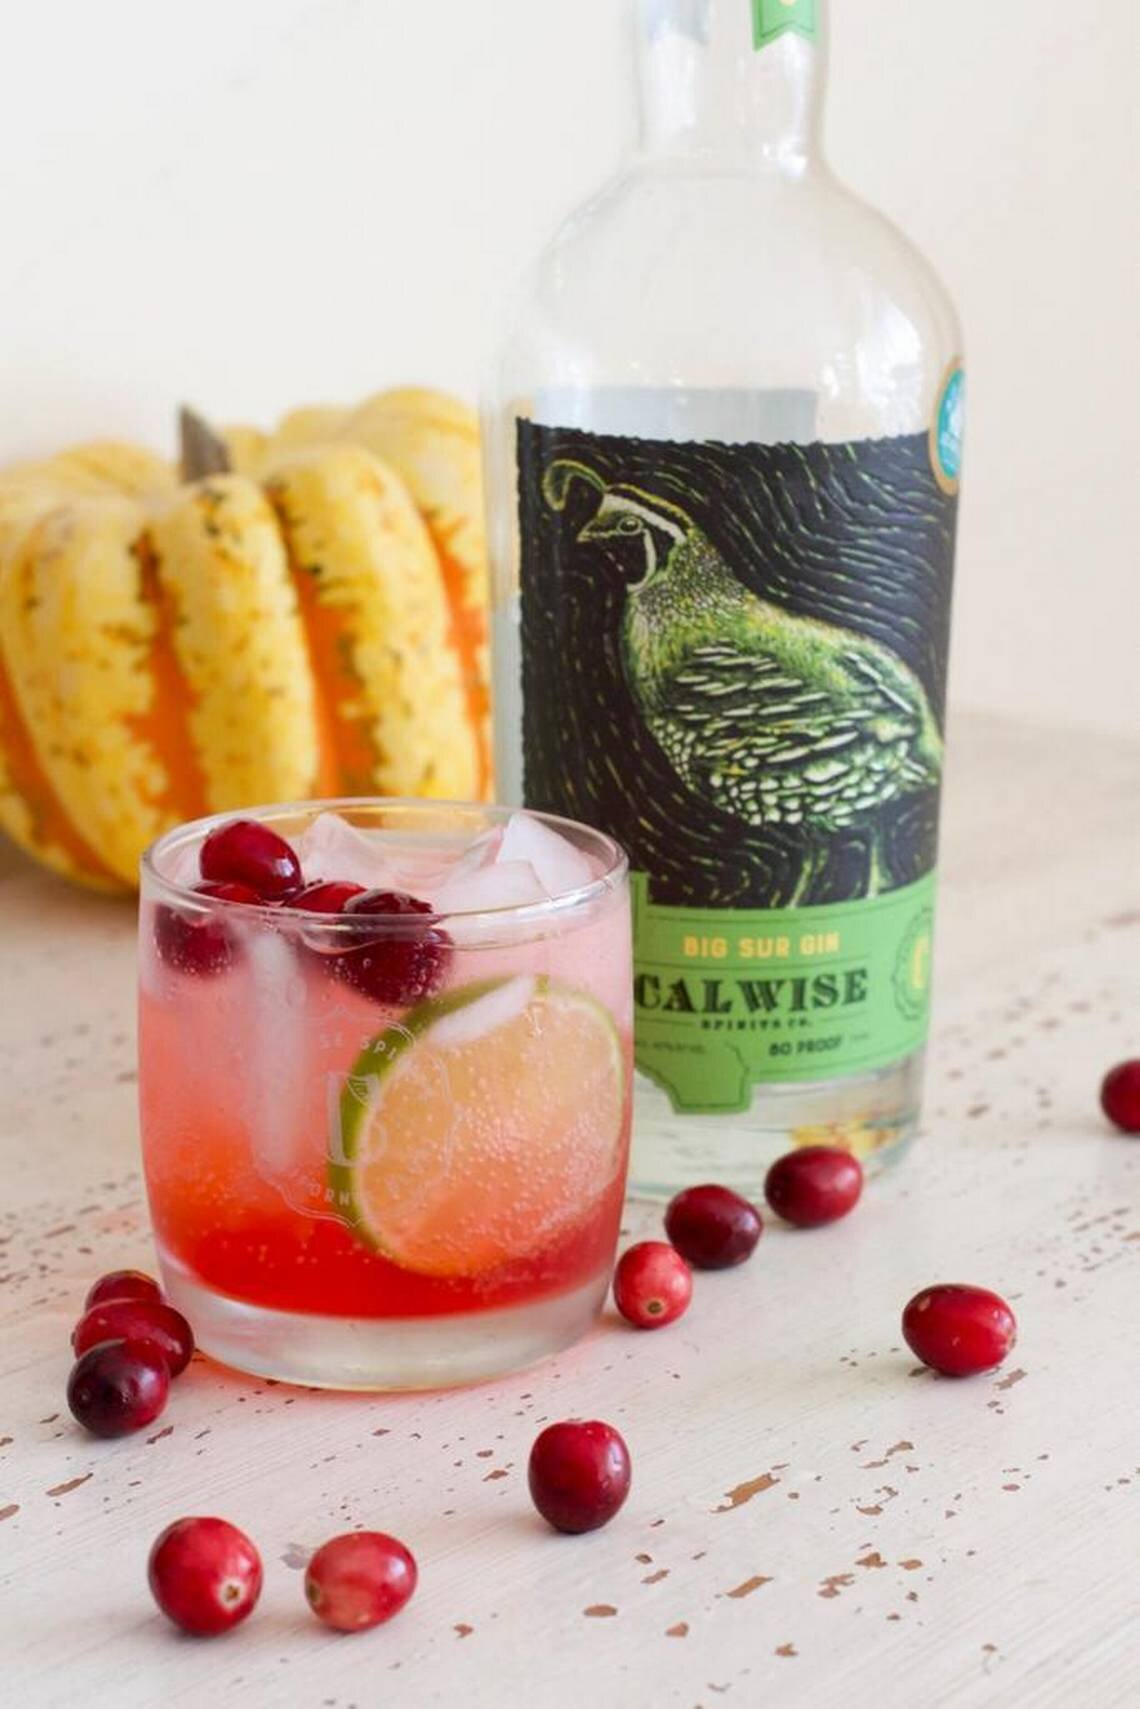 Calwise Cocktail.jpg